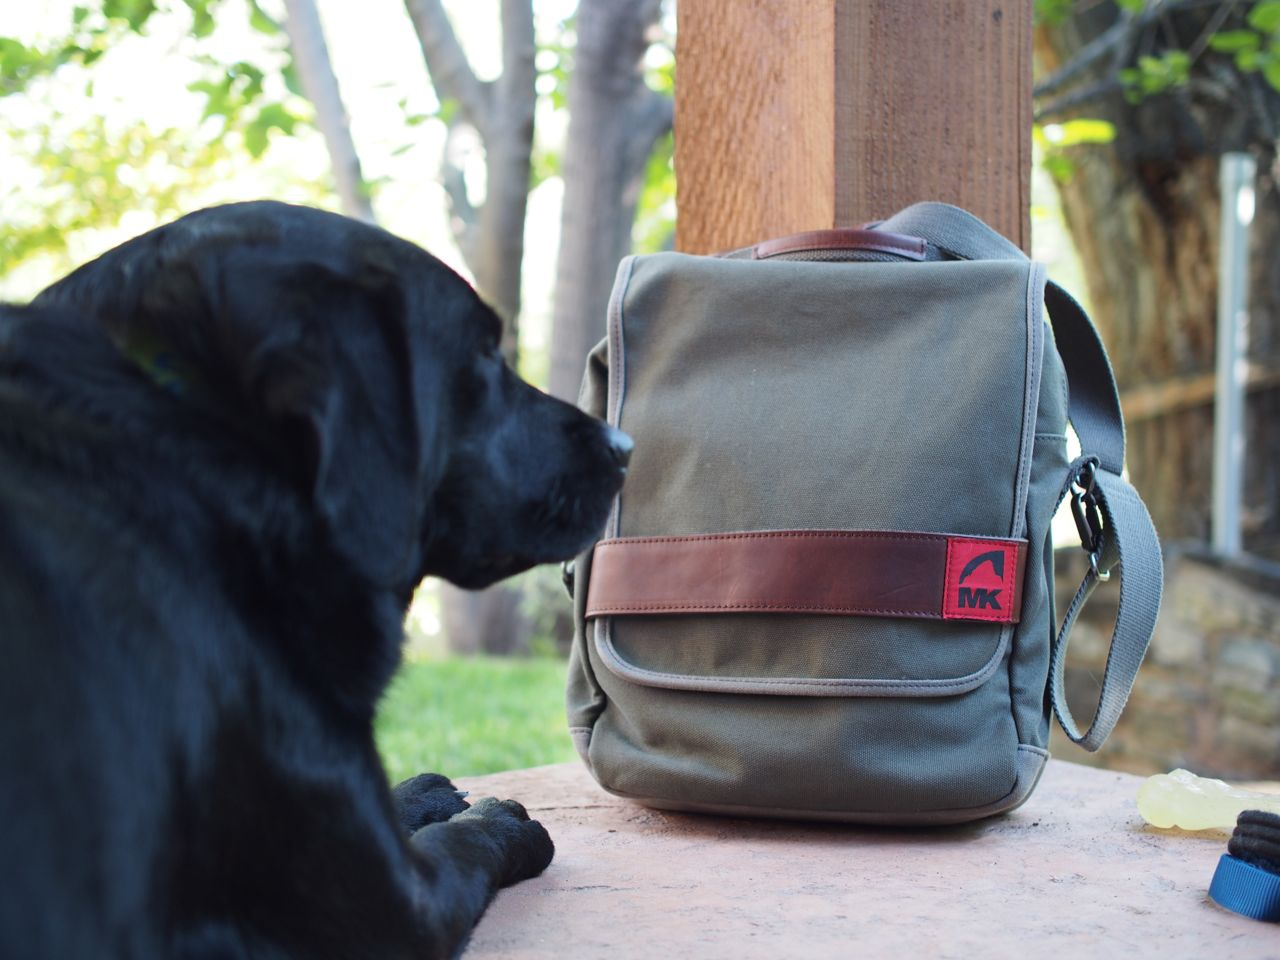 The Mk Field Bag Is Made Of 20oz Heavy Weight Canvas And Reinforced With 18oz Waxed Cotton Duck To Protect Your Gear From Rain Elements